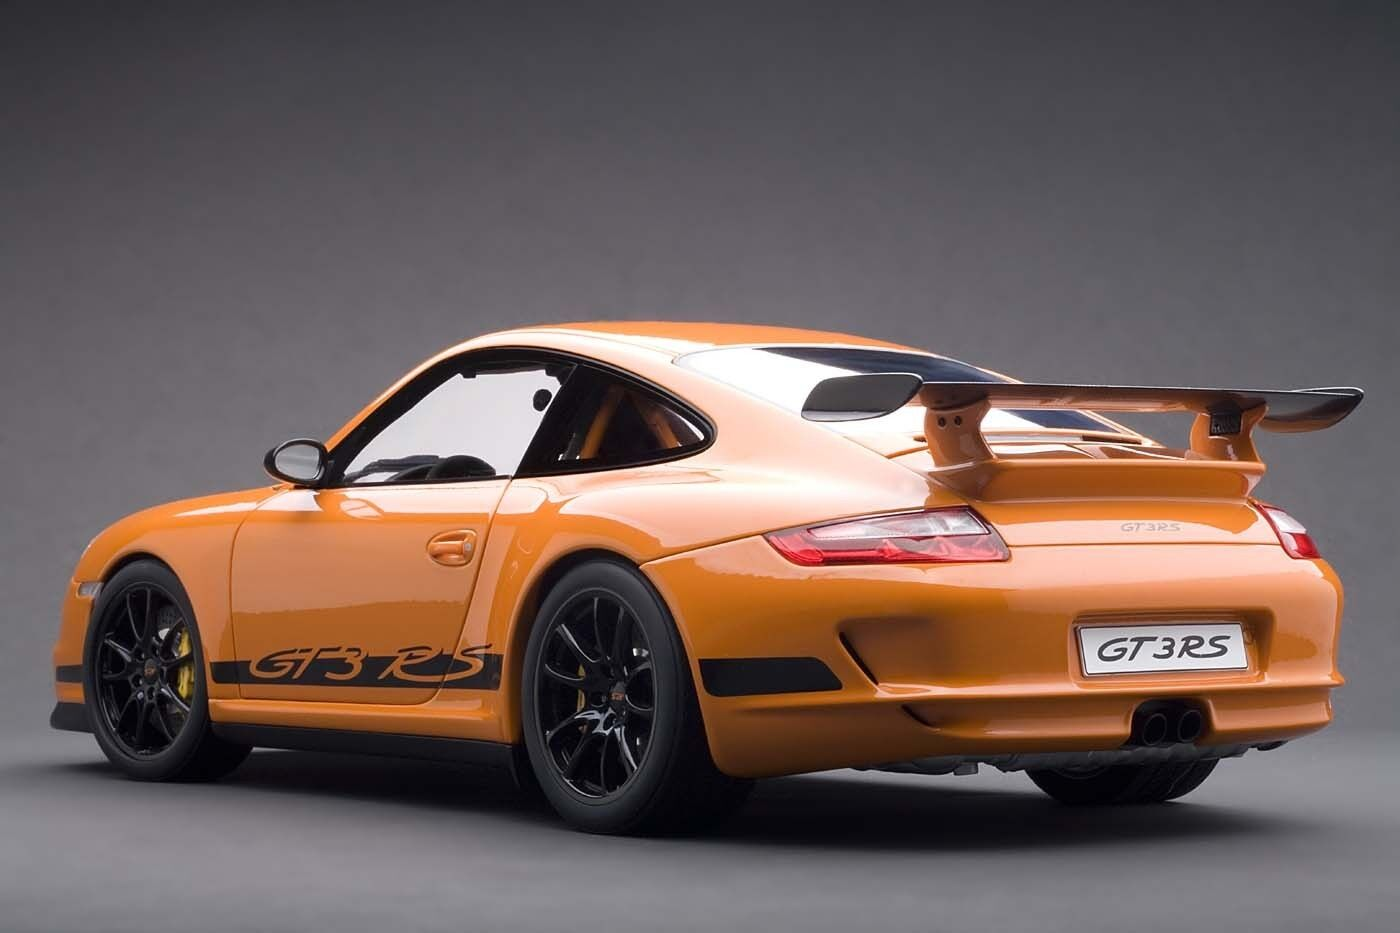 Porsche 911 (997) GT3 RS Orange 1 12 by Autoart  12117 Brand New in box RARE